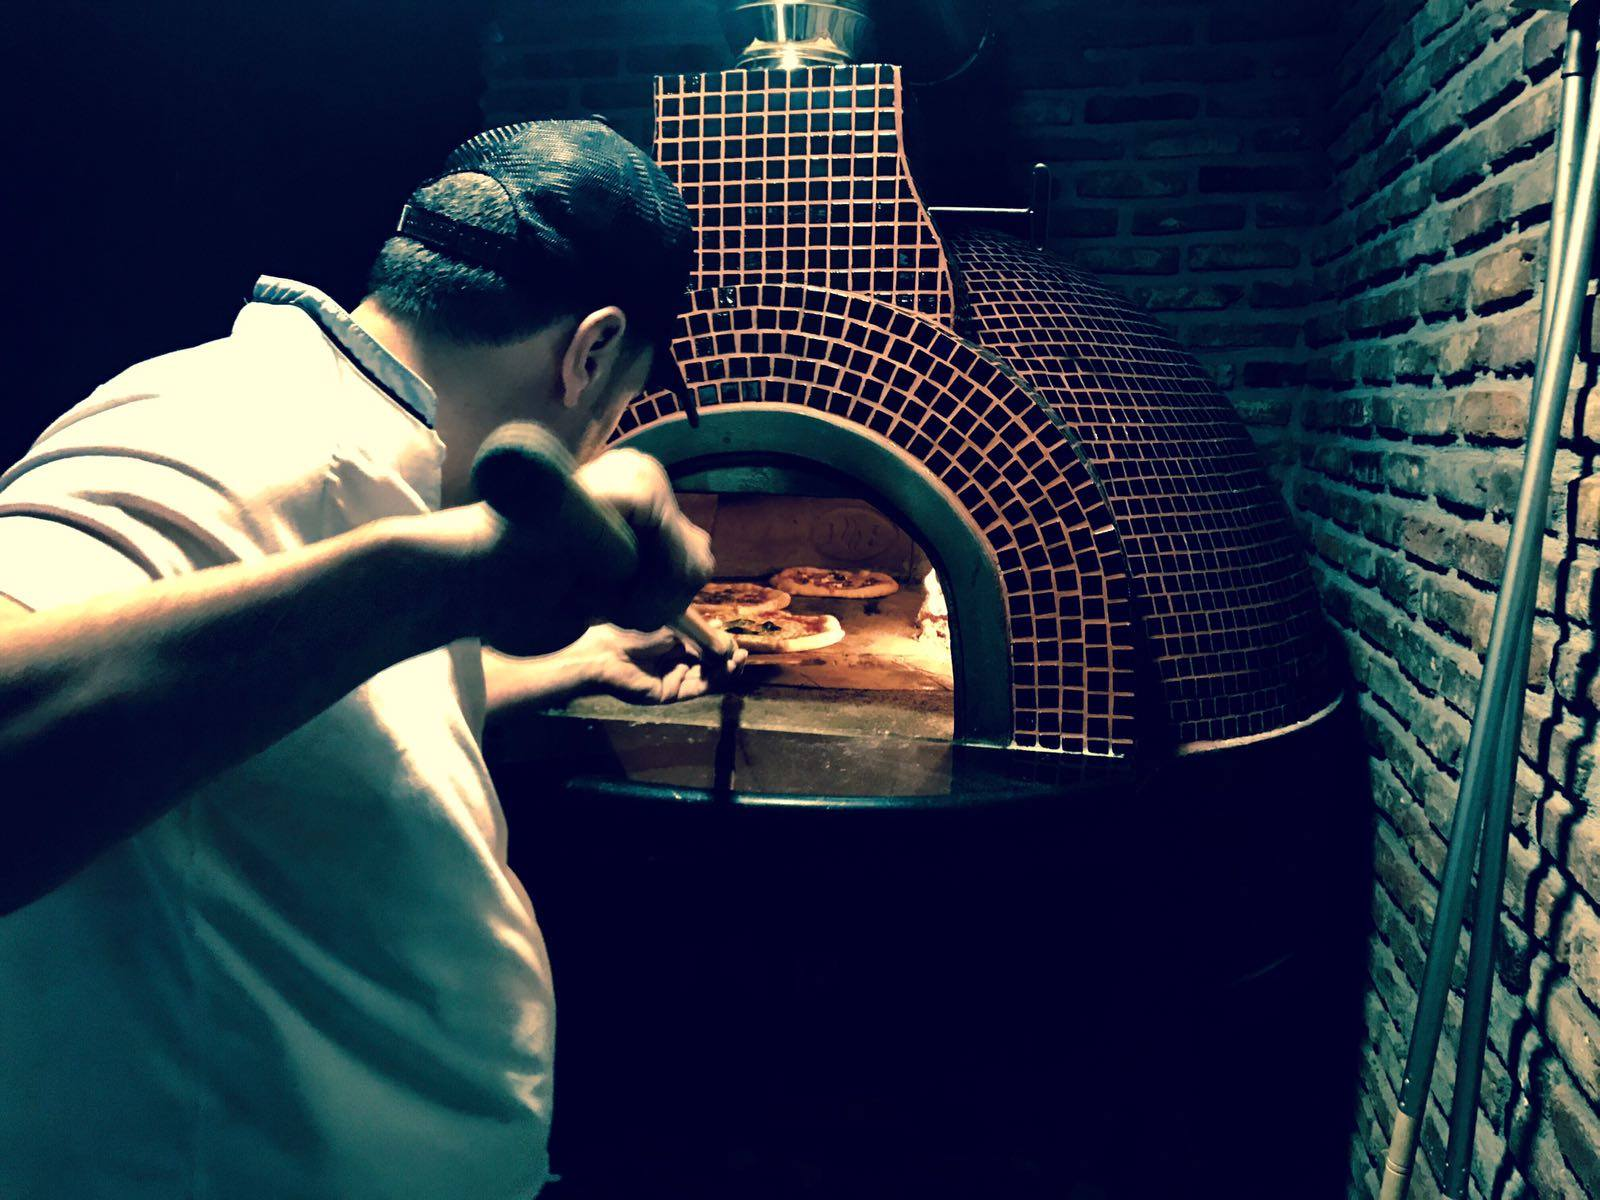 wood oven pizza Spain